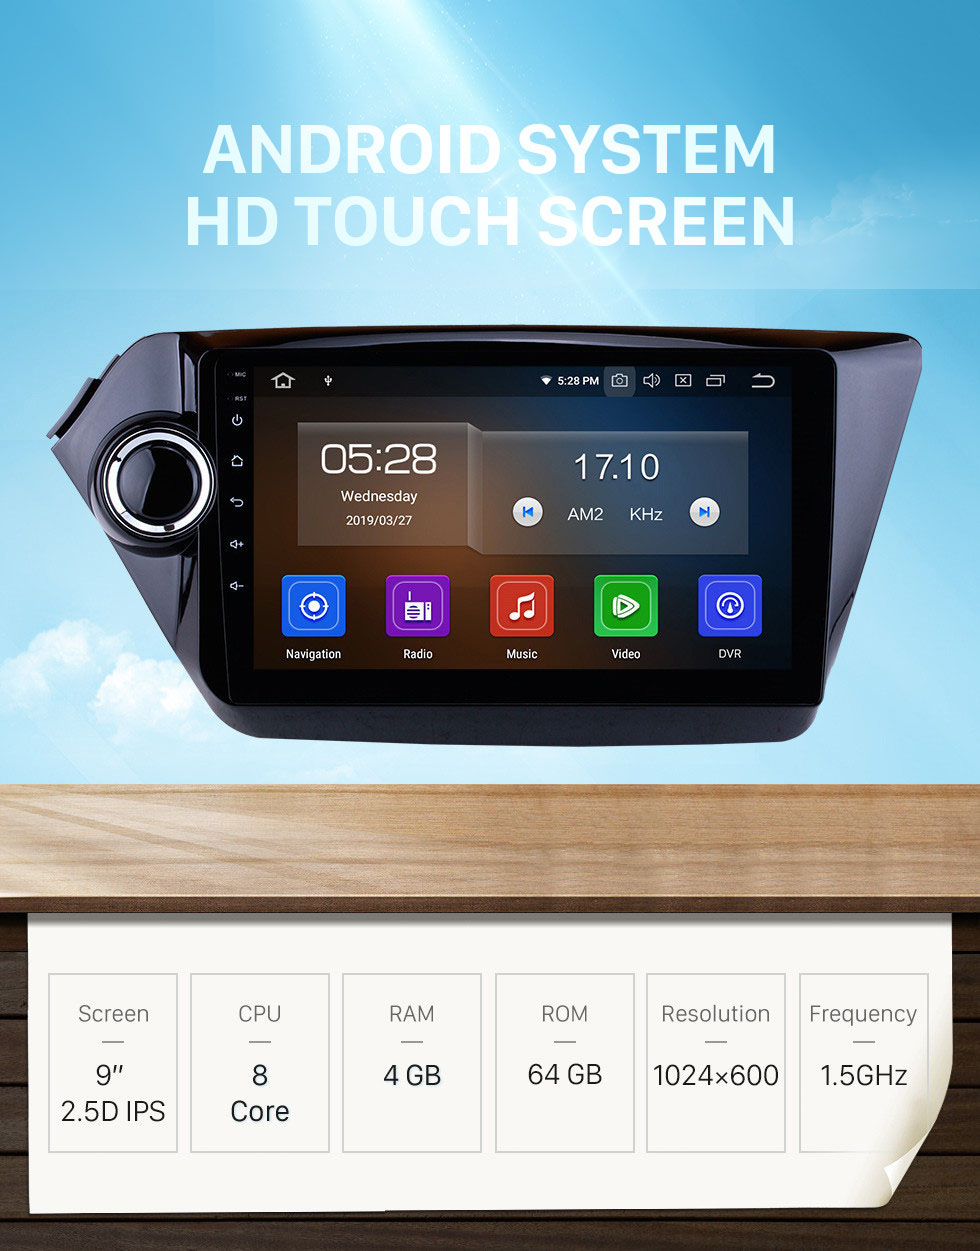 Seicane 9 Inch Aftermarket Android 10.0 Radio GPS Navigation system For 2012-2015 KIA K2 RIO HD Touch Screen TPMS DVR OBD II Steering Wheel Control USB Bluetooth WiFi Video AUX Rear camera